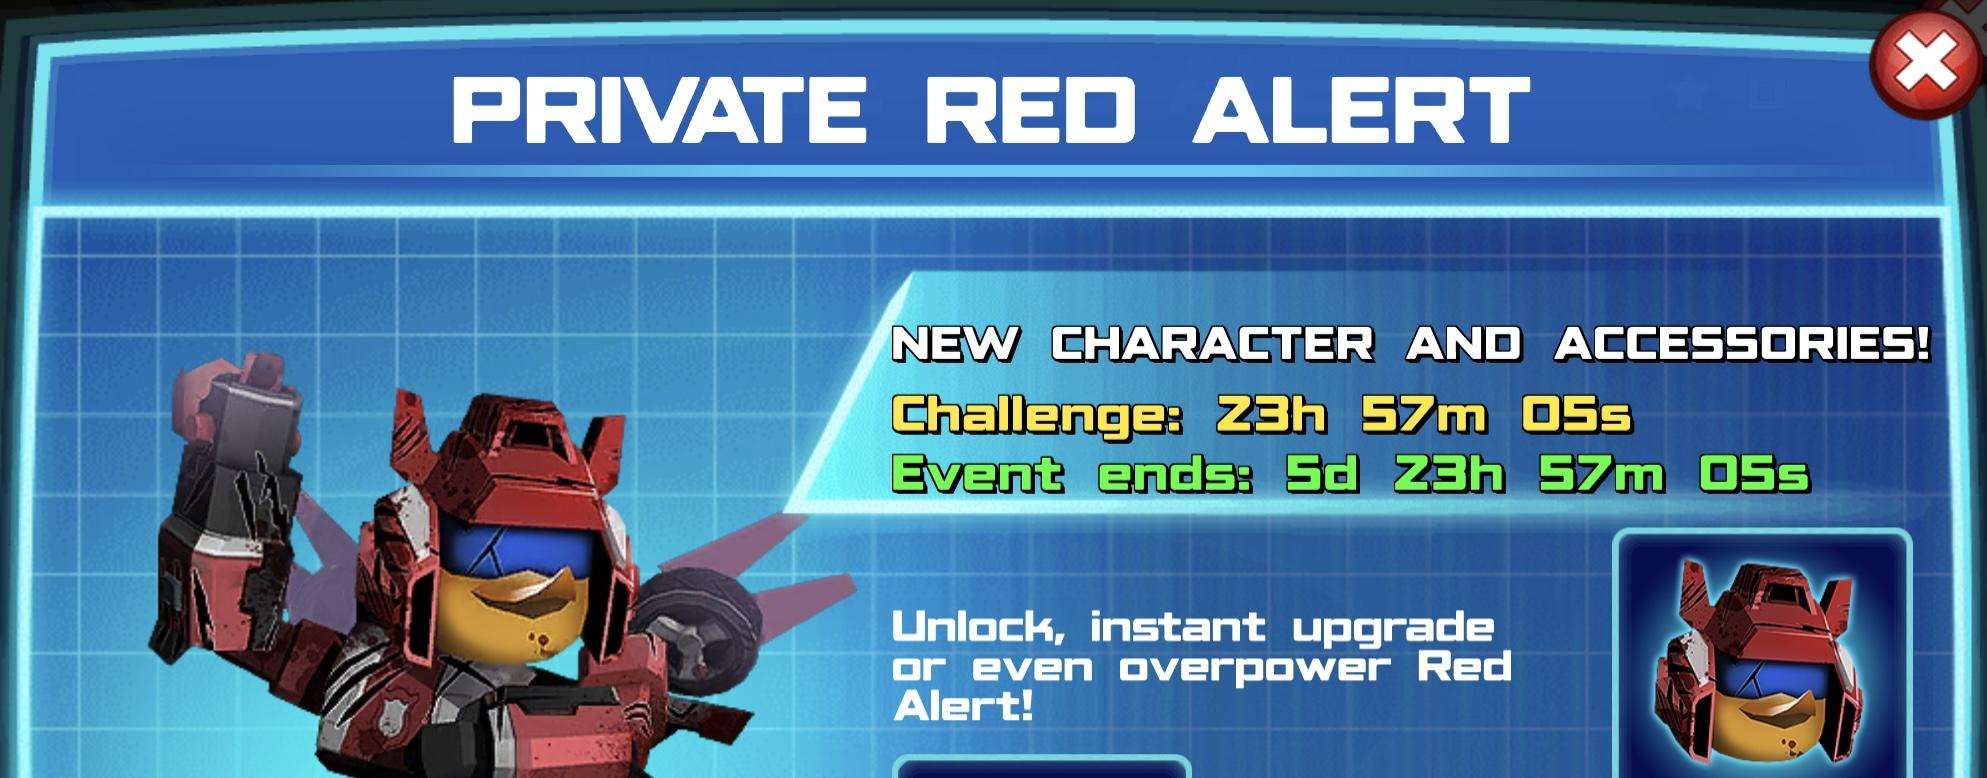 The event banner for Private Red Alert